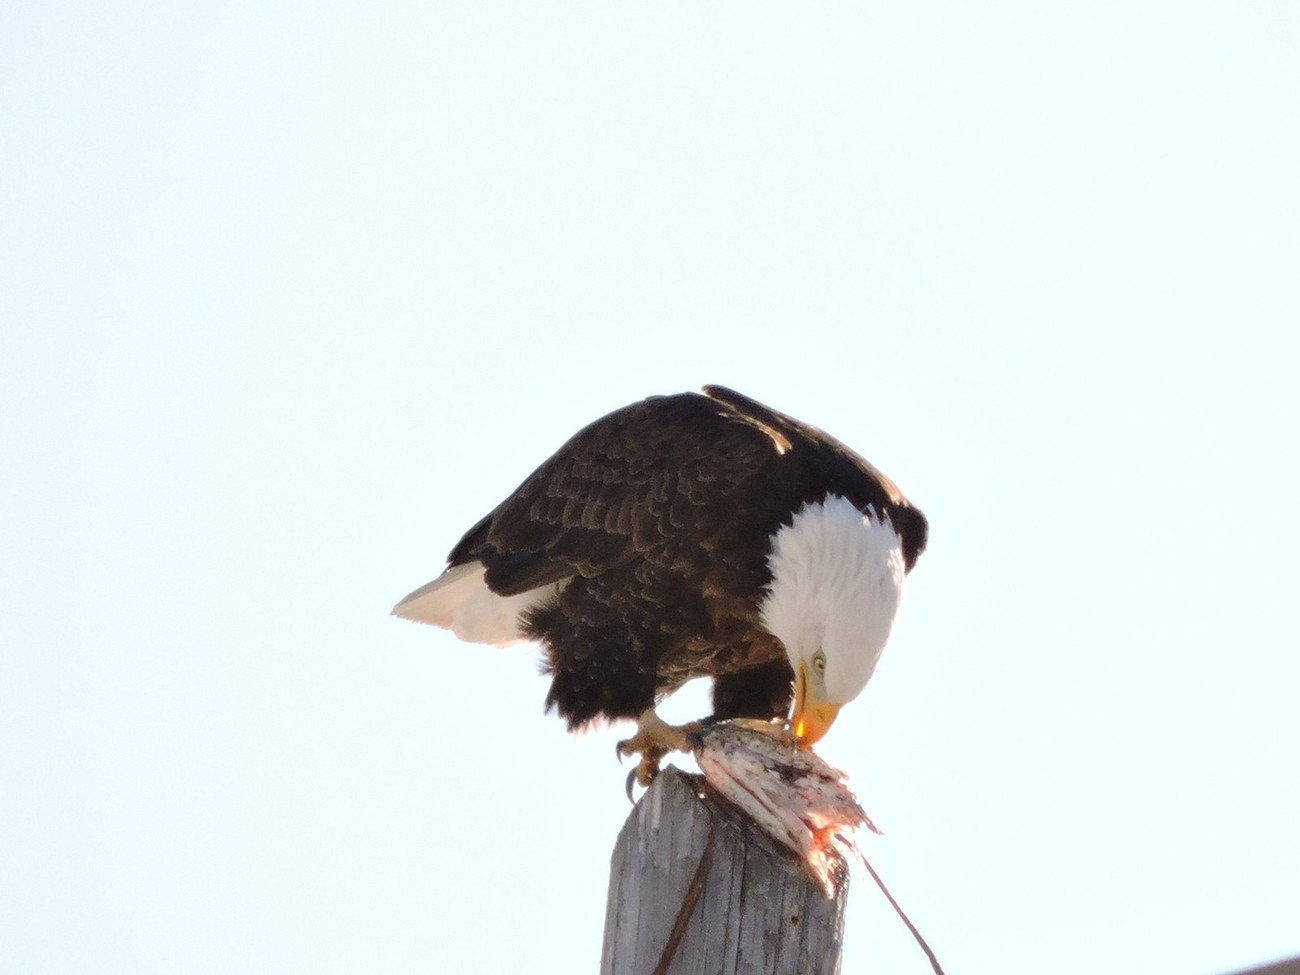 nearly everyday this fellow is spotted on his favorite power pole, patiently waiting for a fish to catch